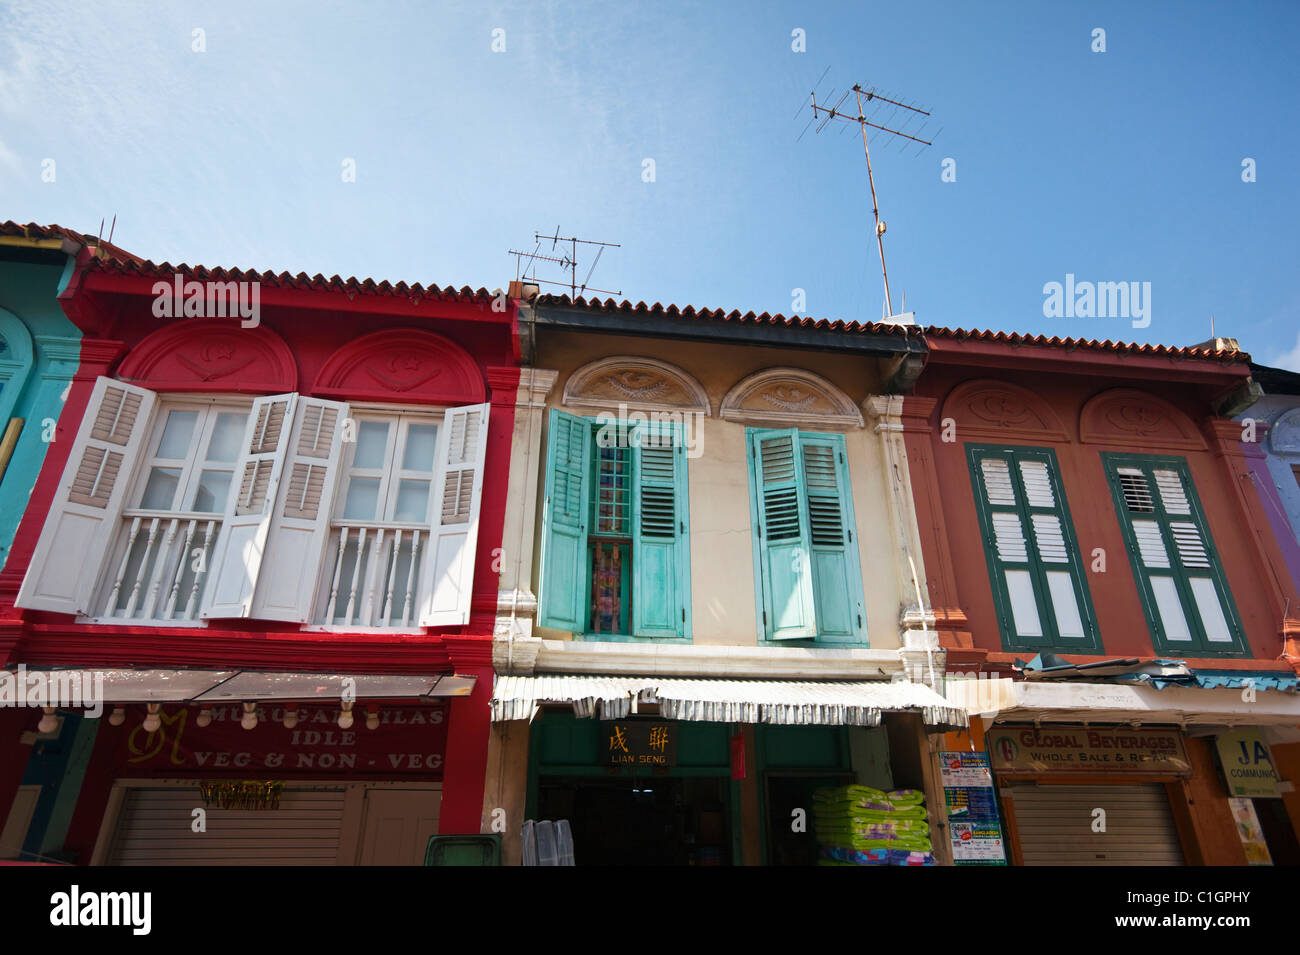 Colourful shophouses on Dunlop Street, Little India, Singapore - Stock Image